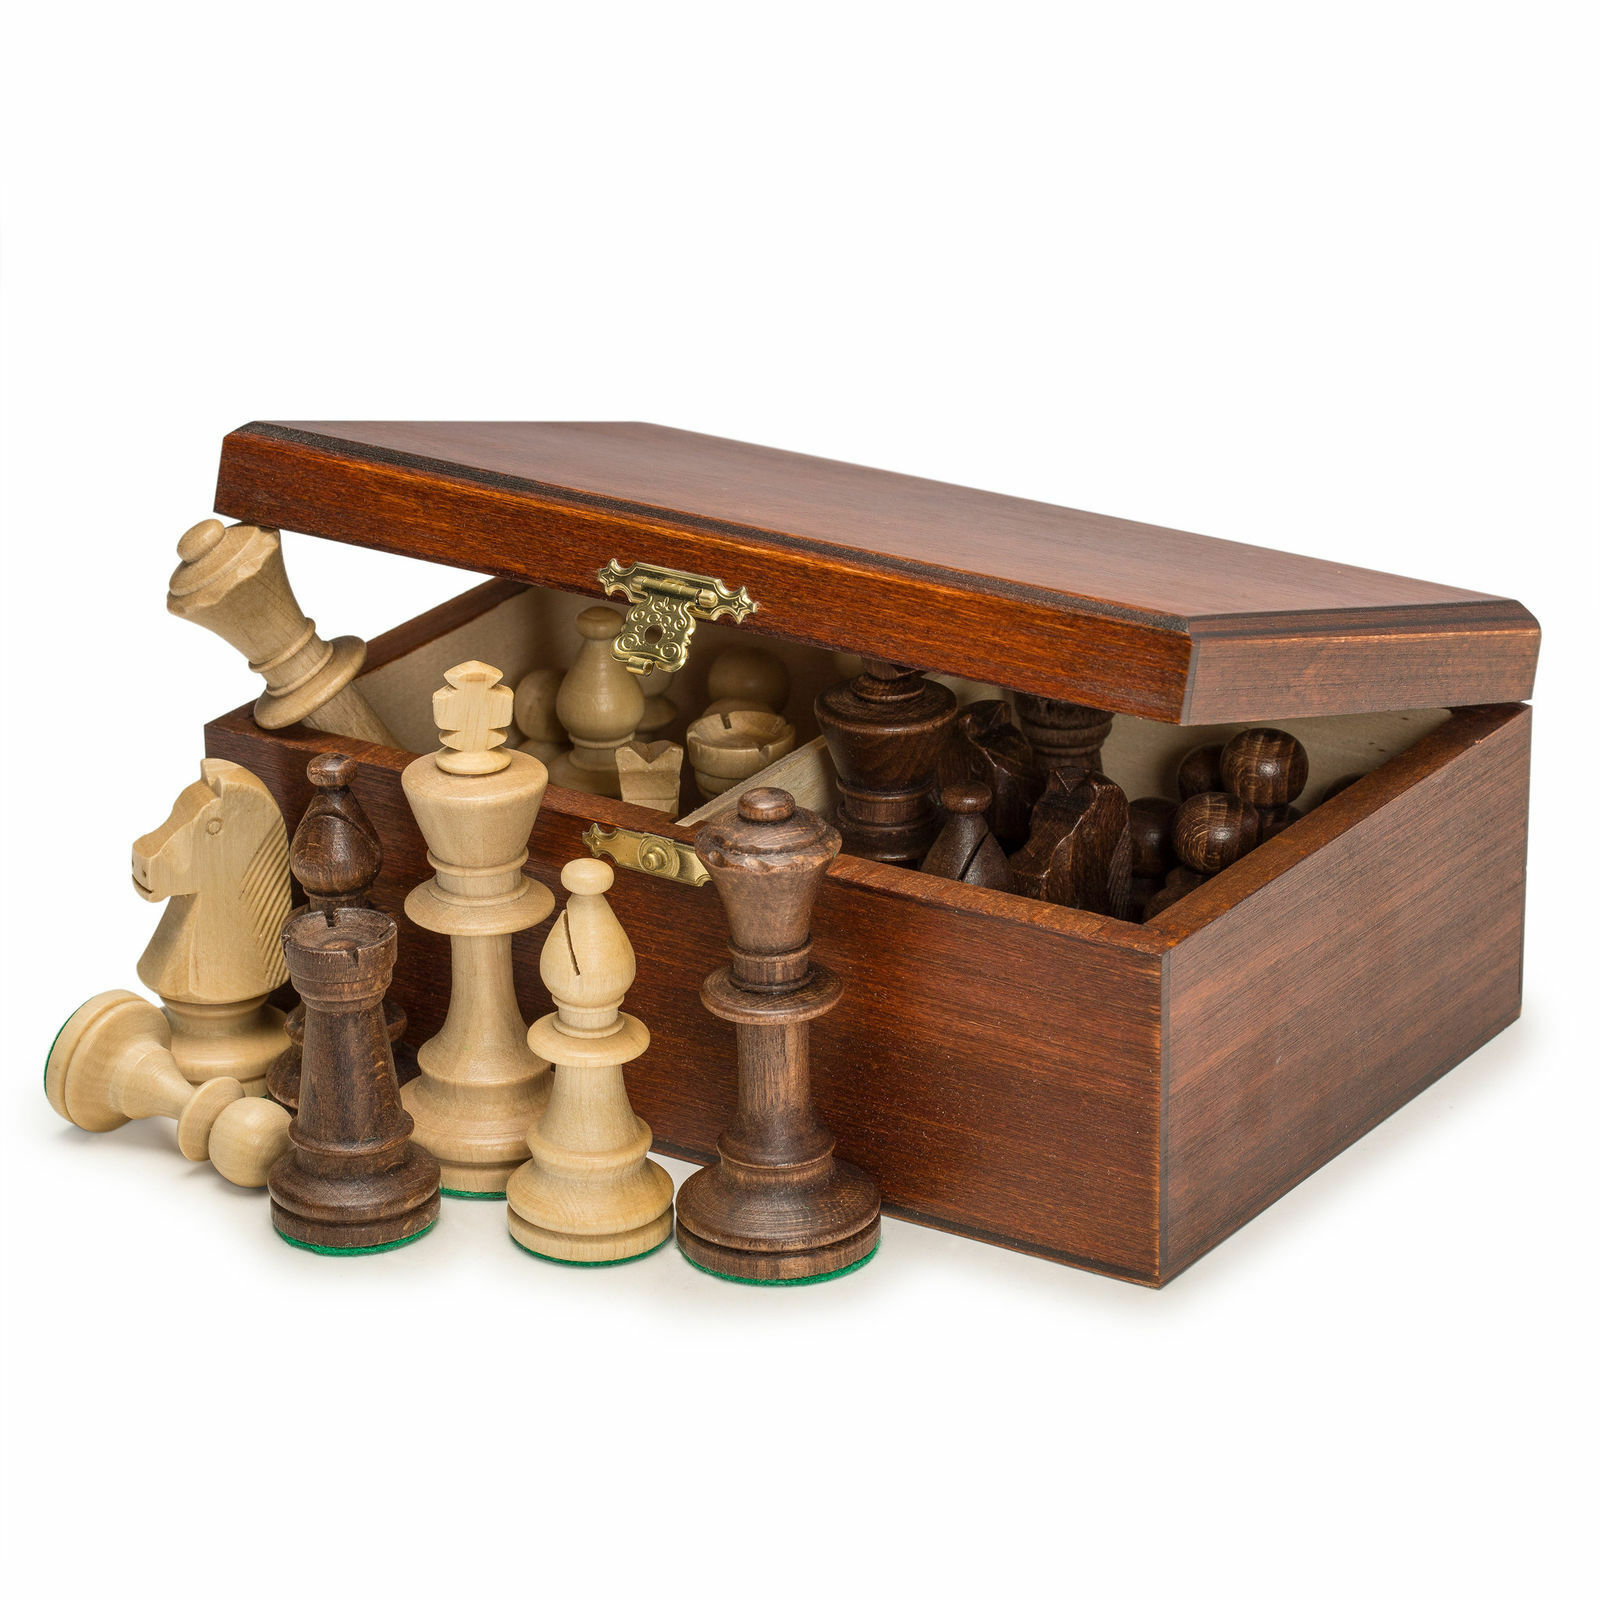 Staunton No. 5 Tournament Chess Pieces in Wooden Box - 3.5 King